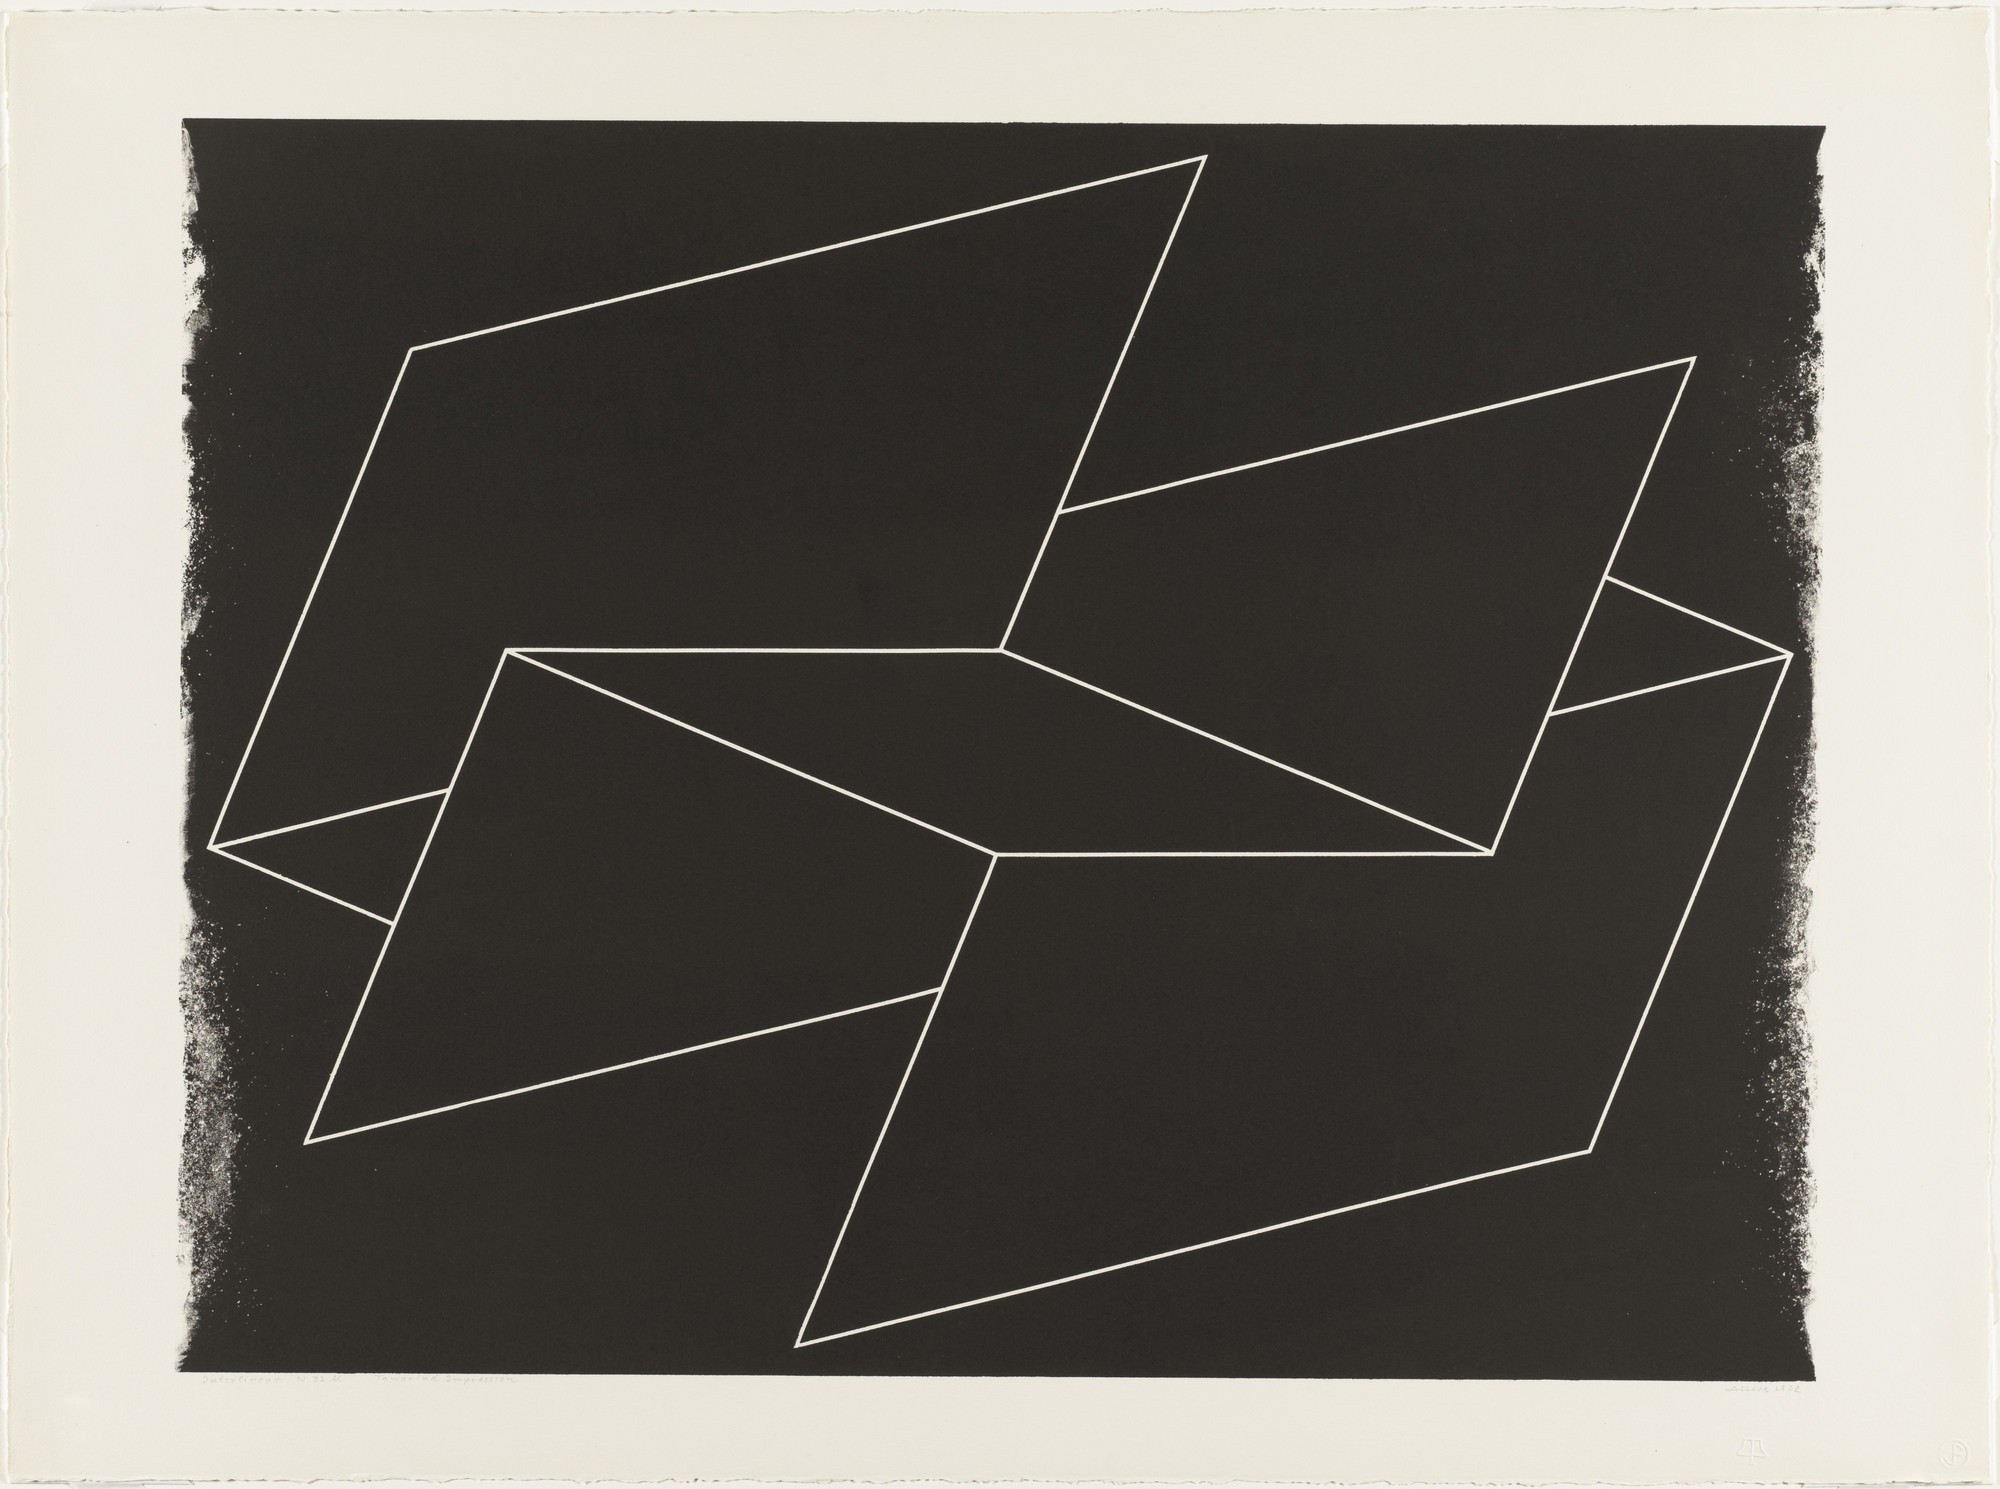 Josef Albers. Interlinear N 32 bl. (May 11-June 6) 1962